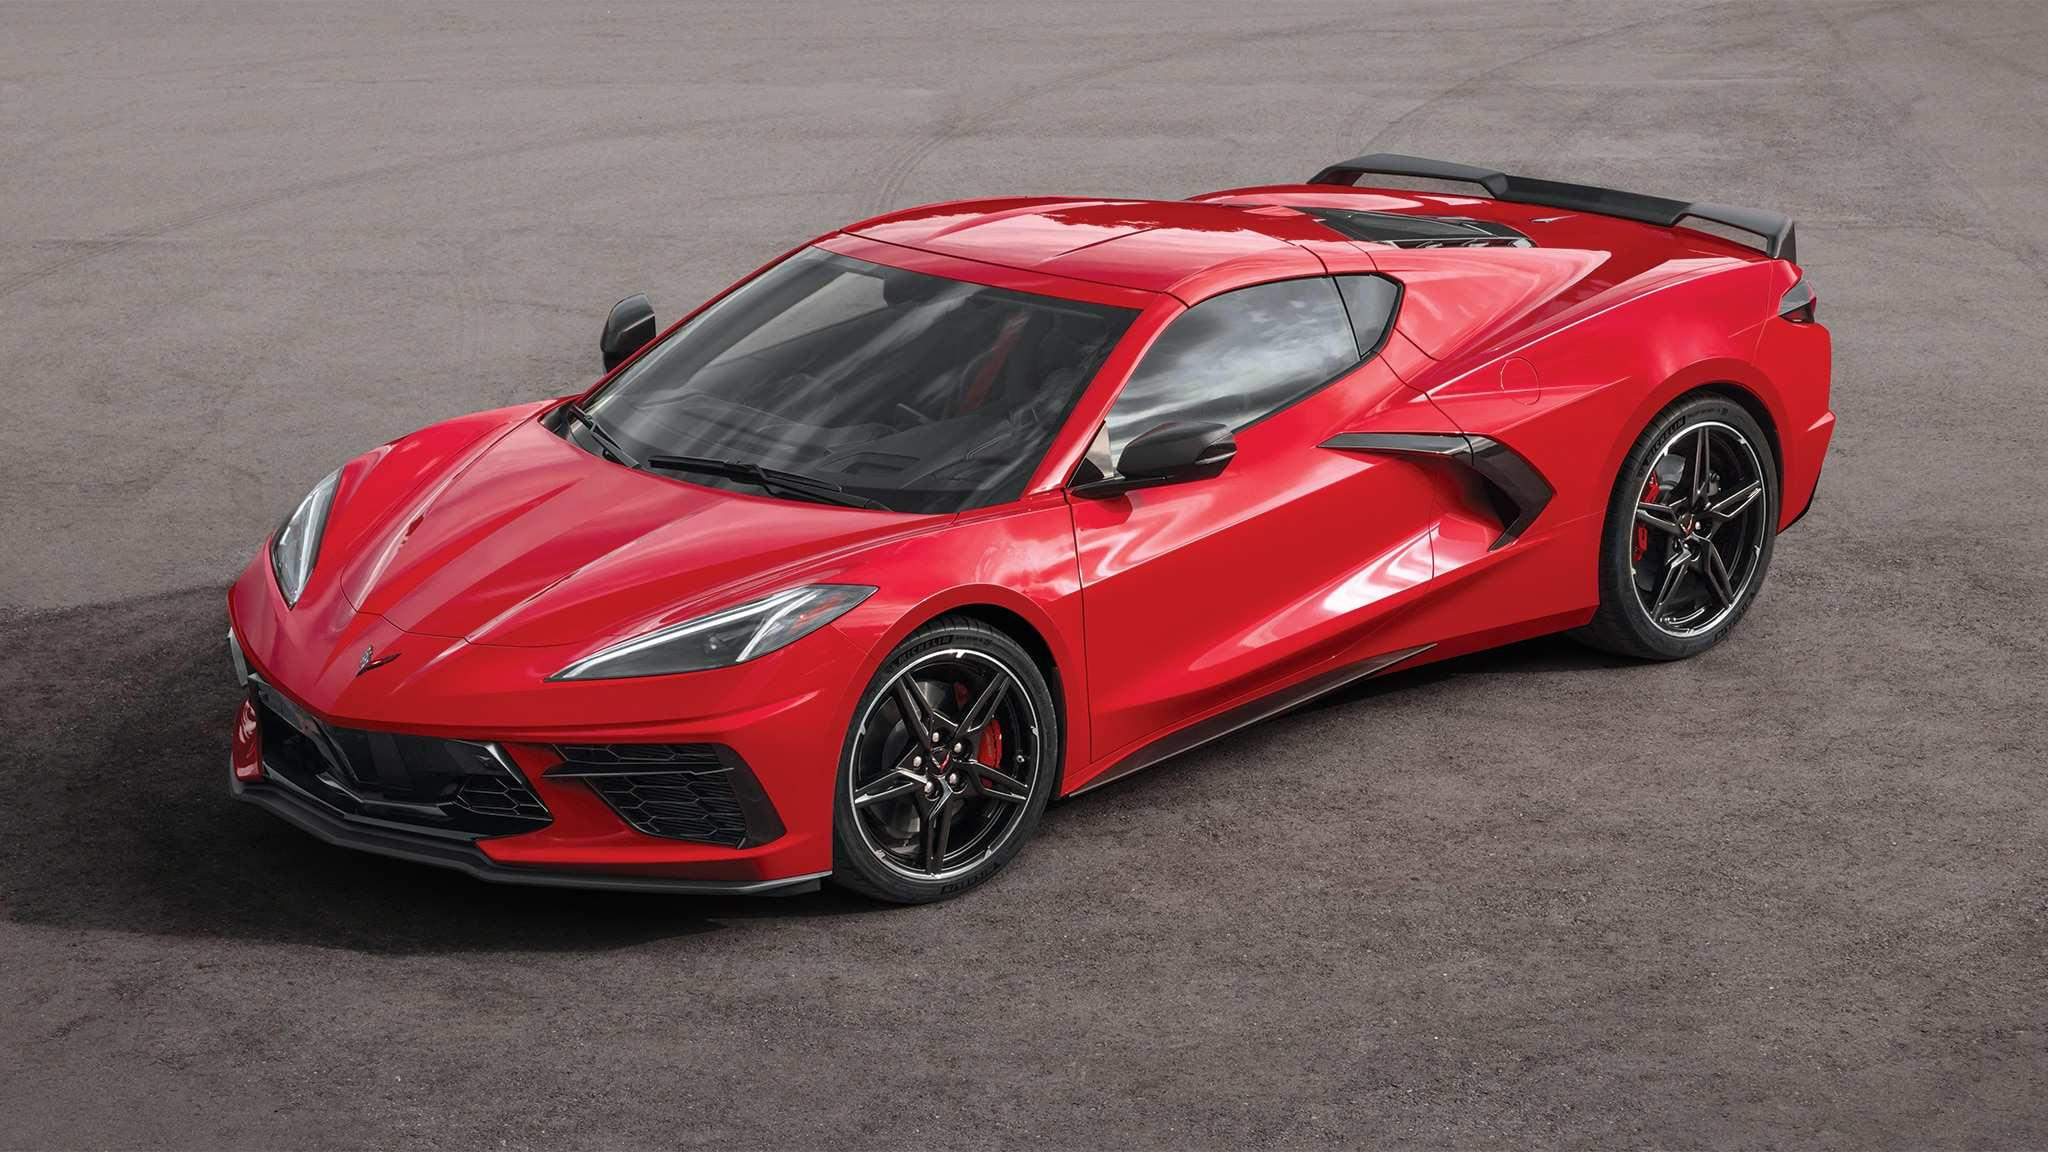 86 Great Chevrolet Corvette 2020 Images for Chevrolet Corvette 2020